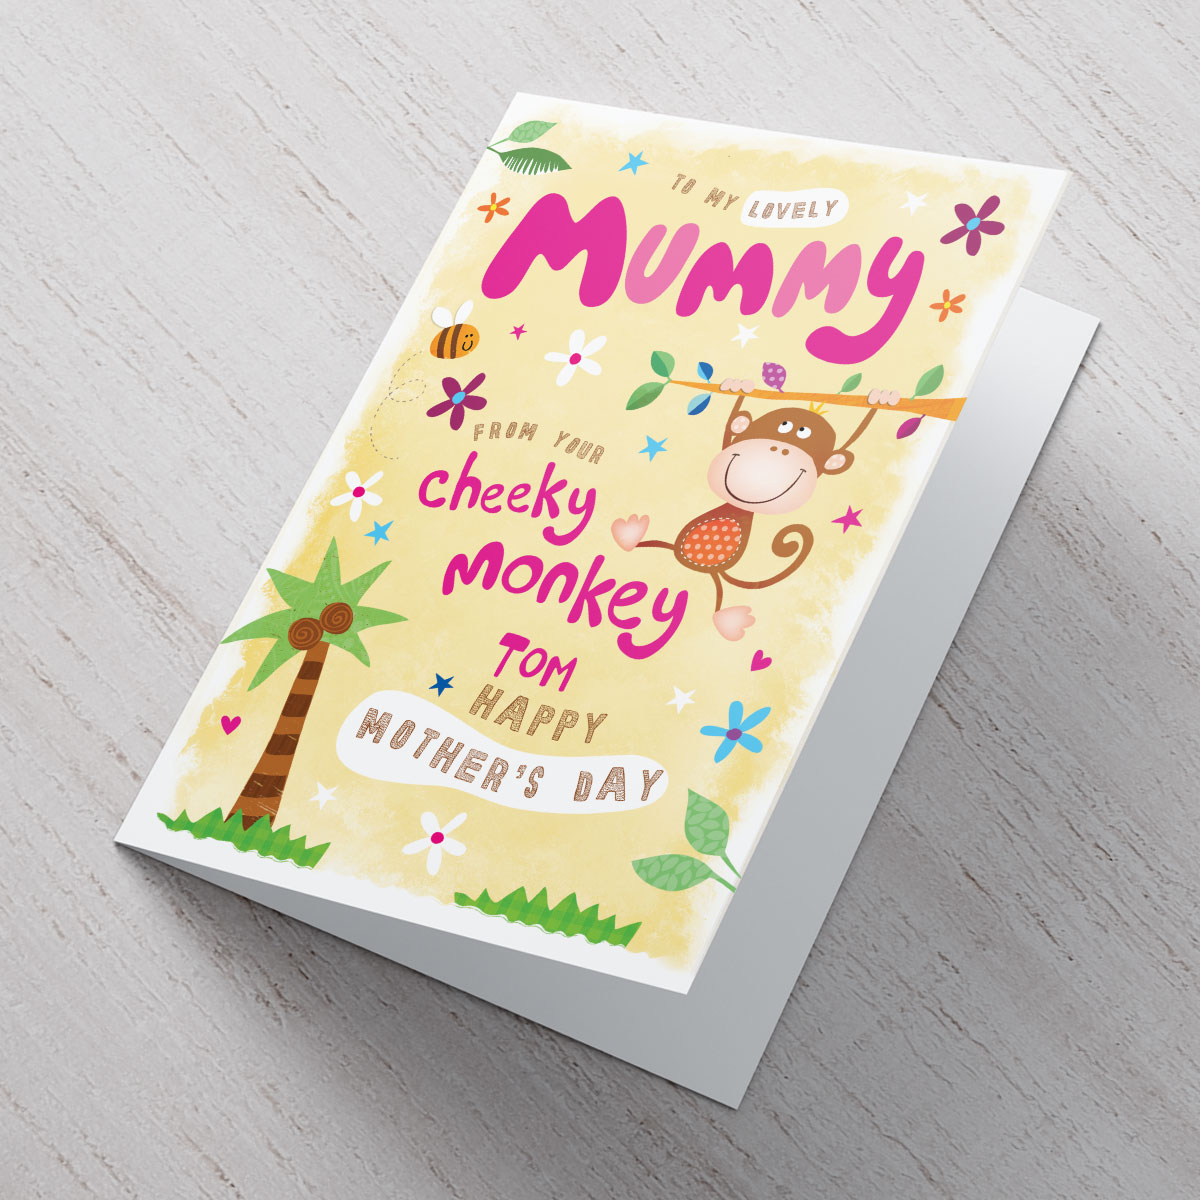 Bargain Personalised Mother's Day Card - From Your Cheeky Monkey Stockists